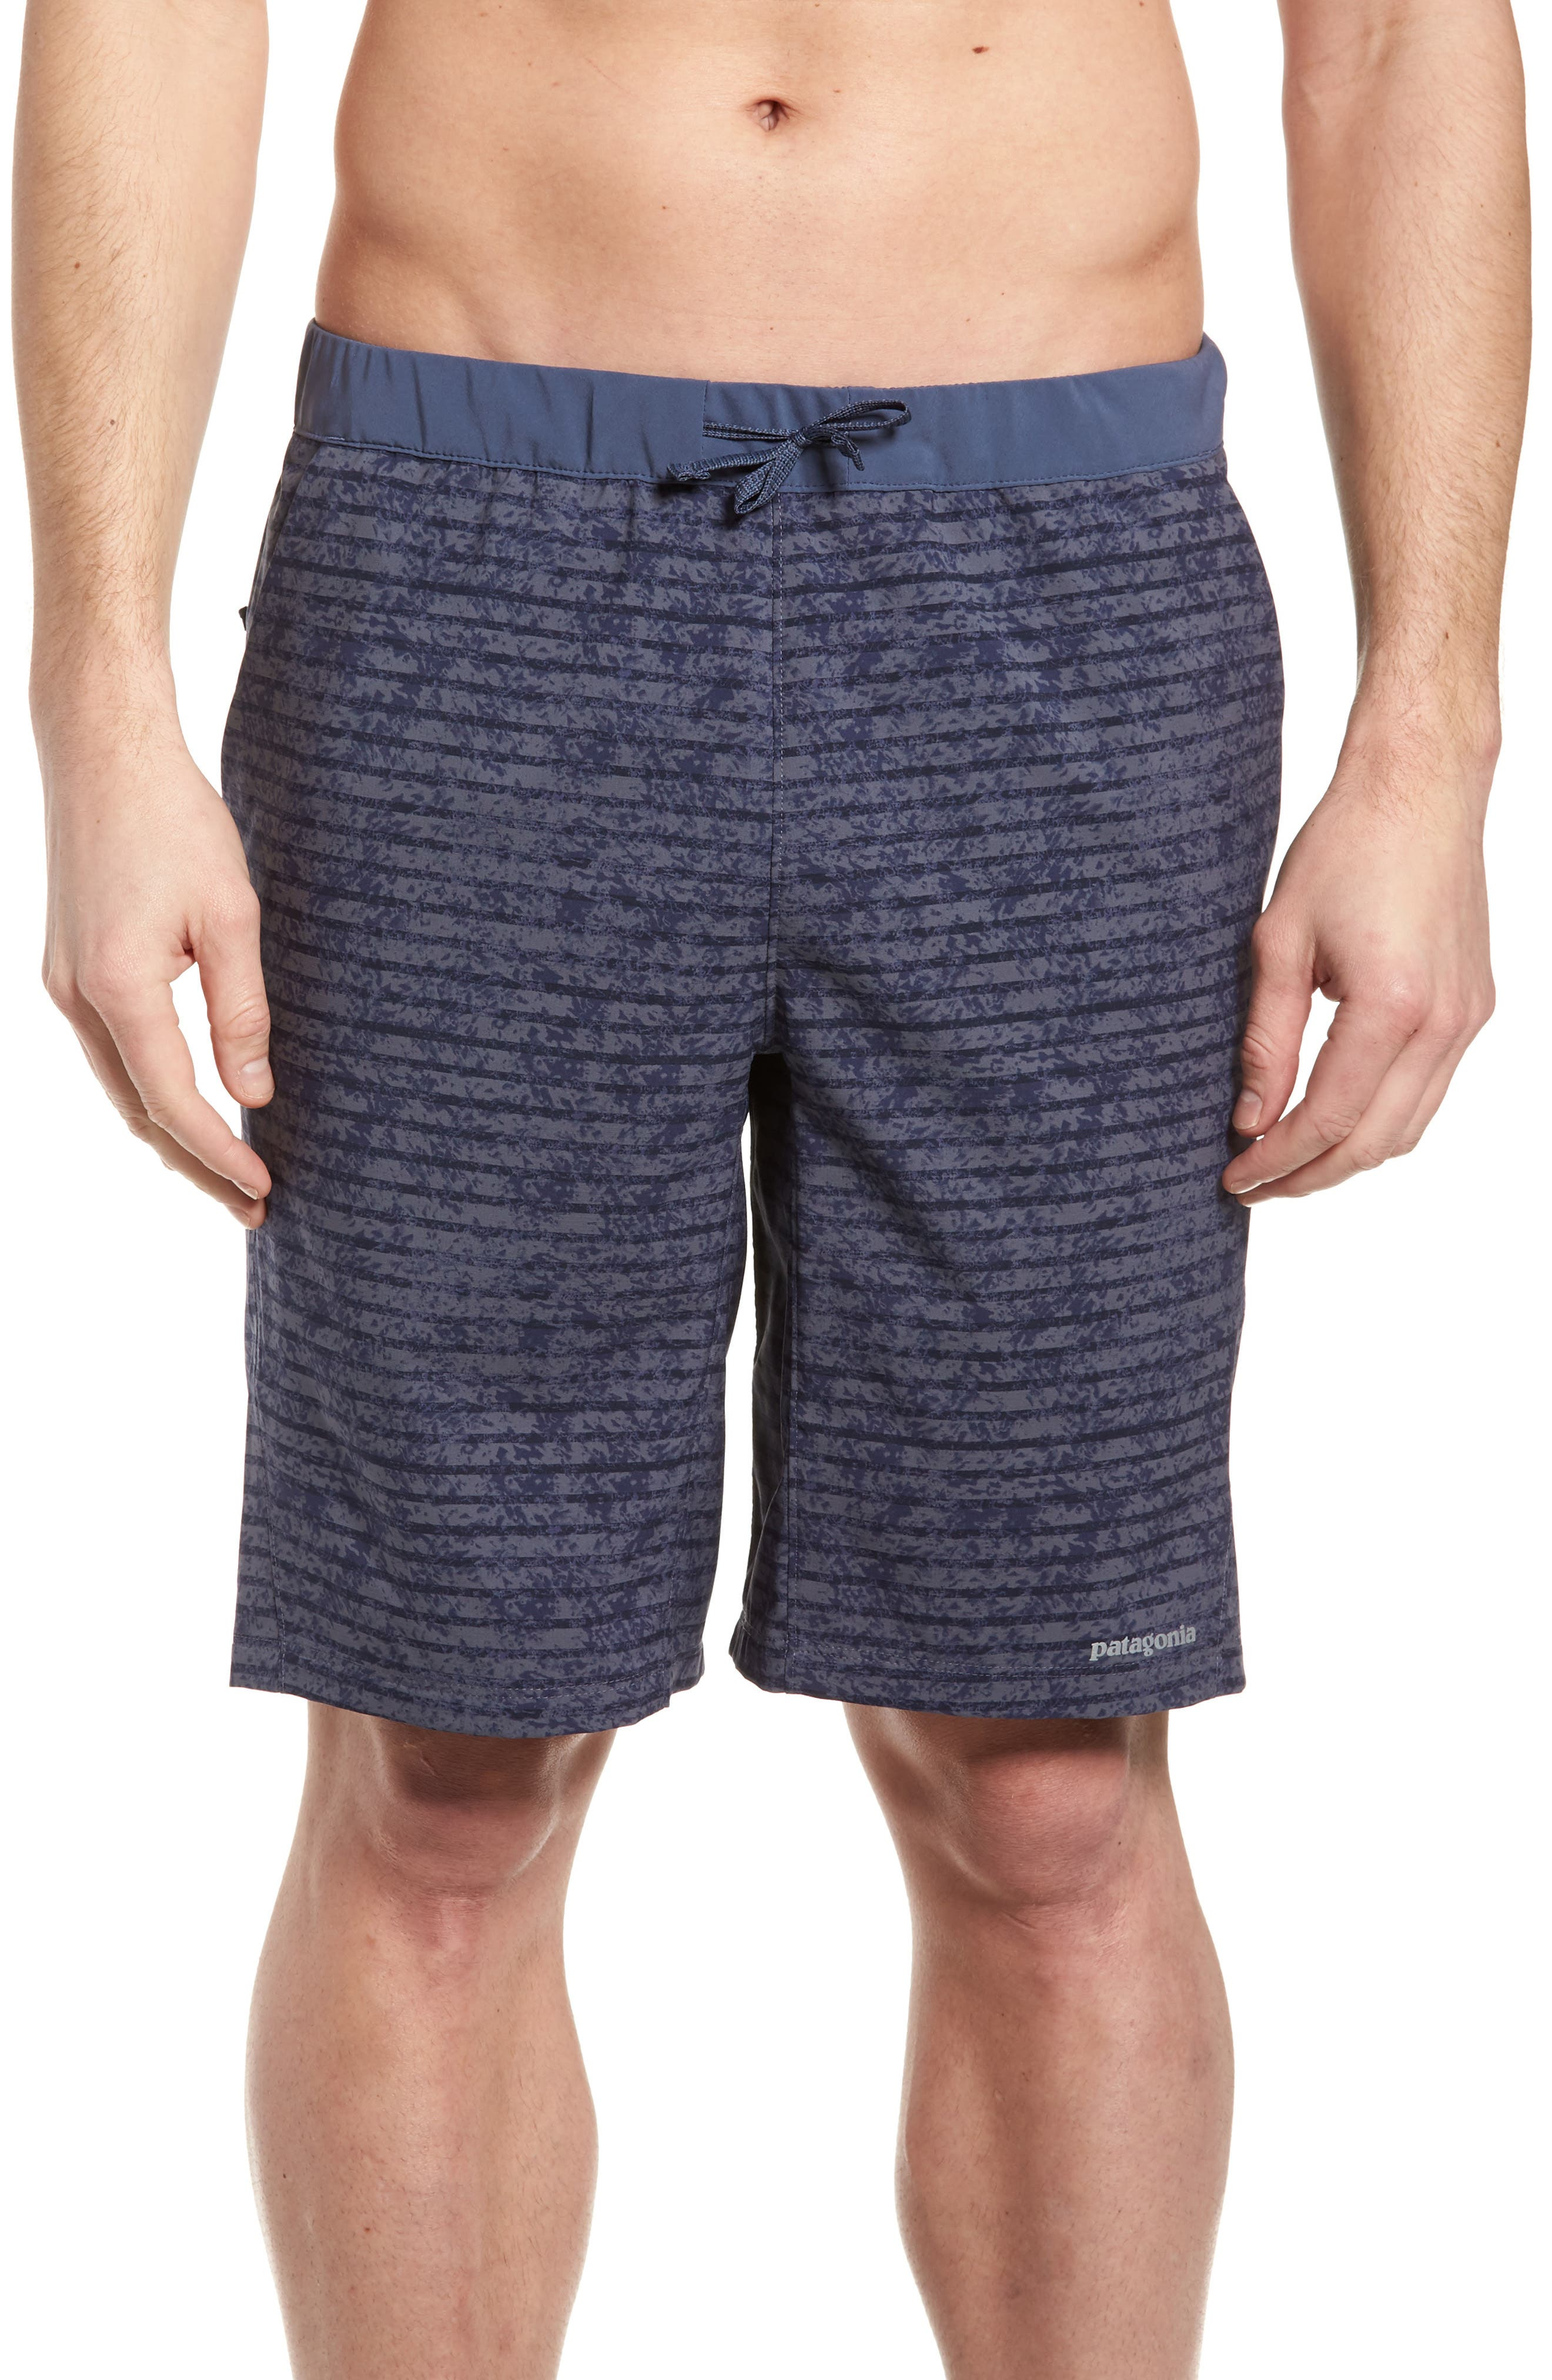 Terrebonne Shorts,                         Main,                         color, Rugby Rock/ Dolomite Blue